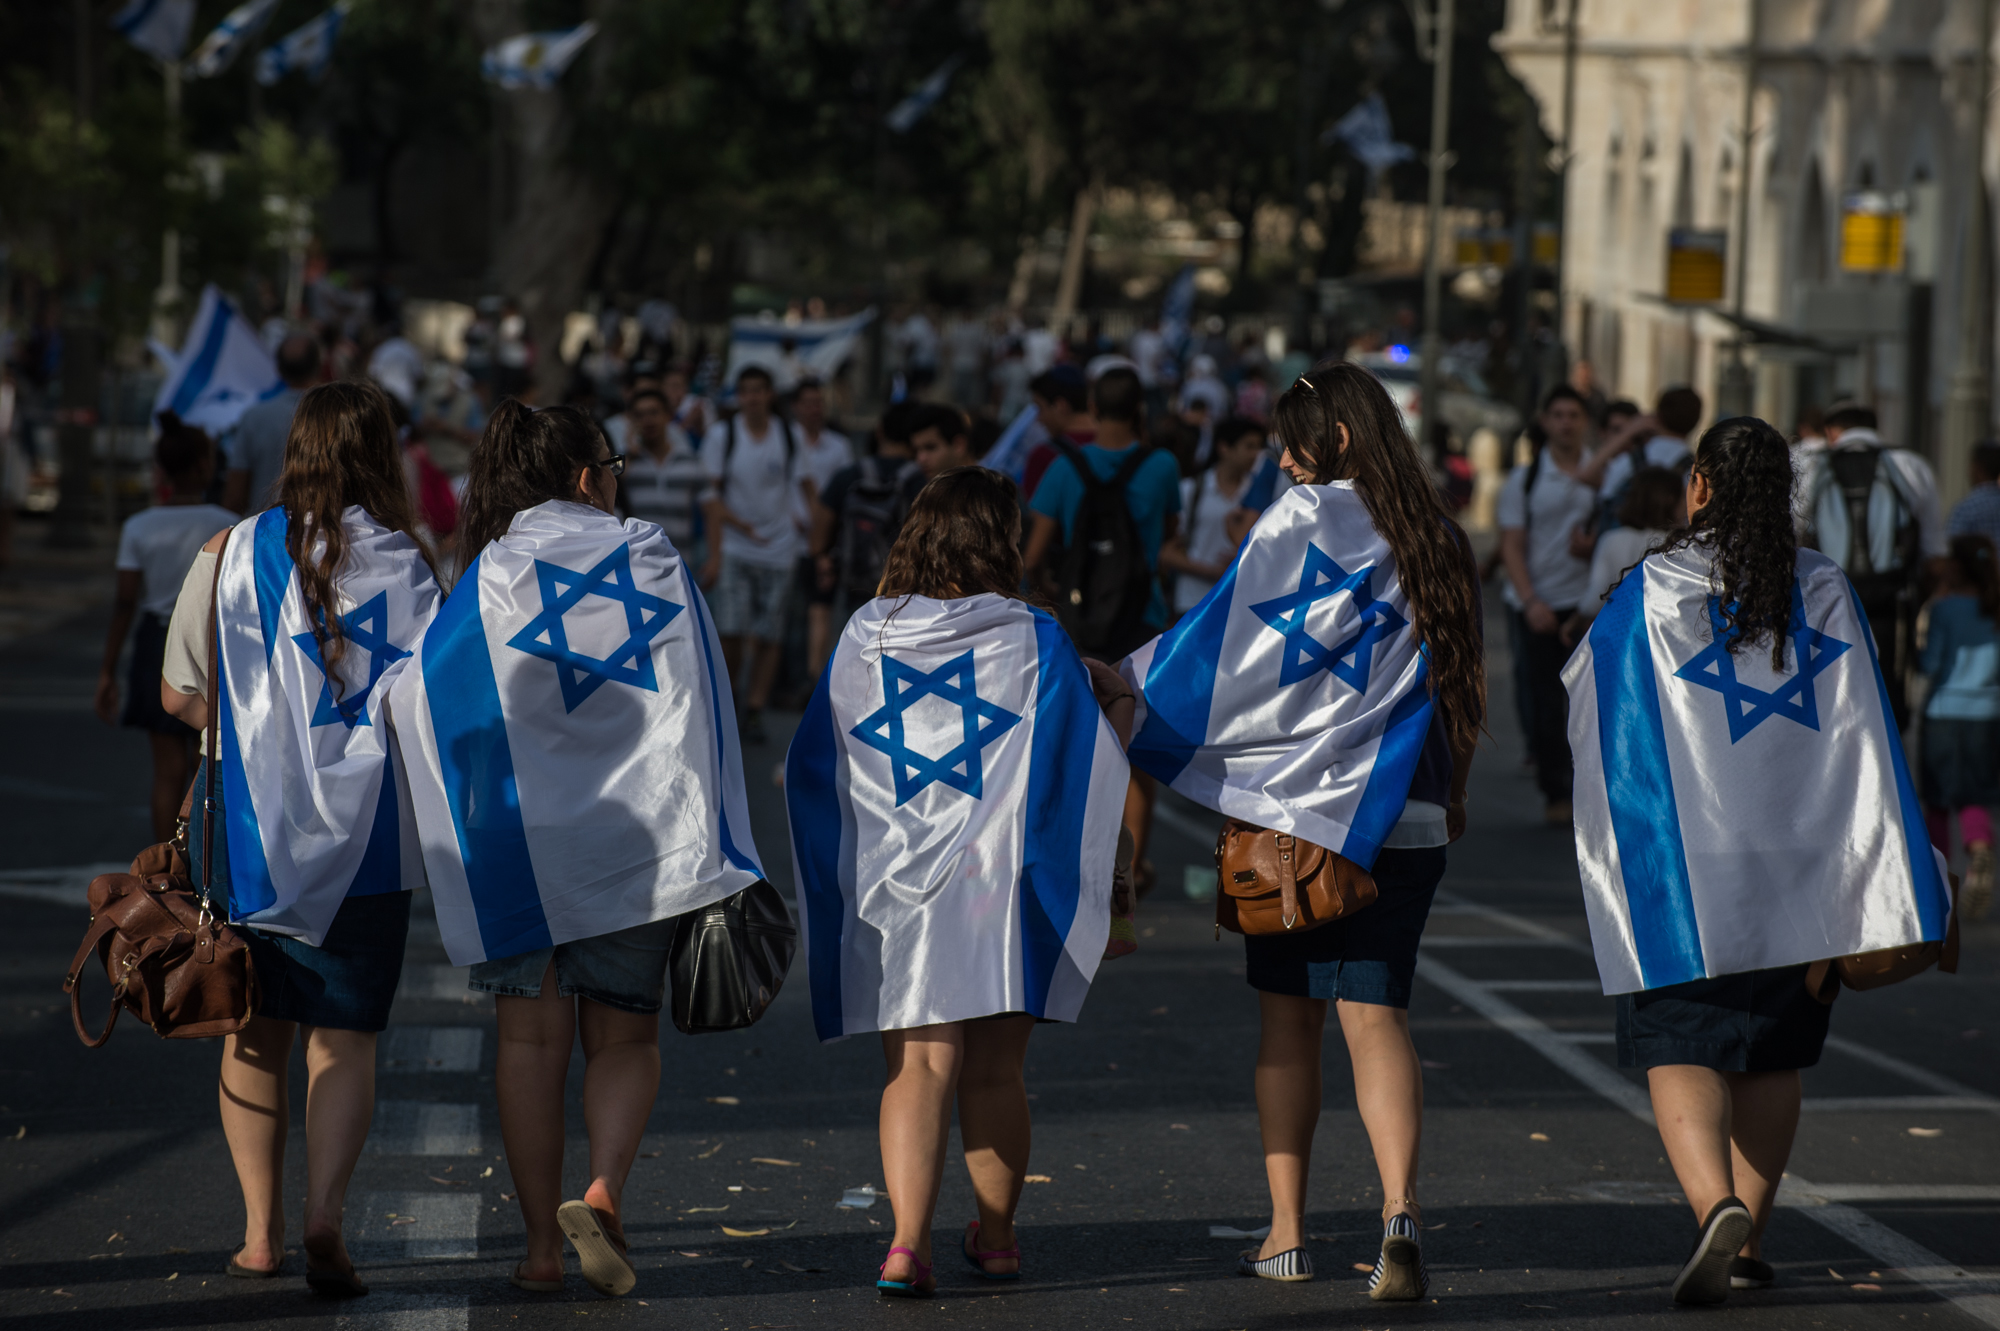 Israel reroutes parade to avoid clashes with Palestinians